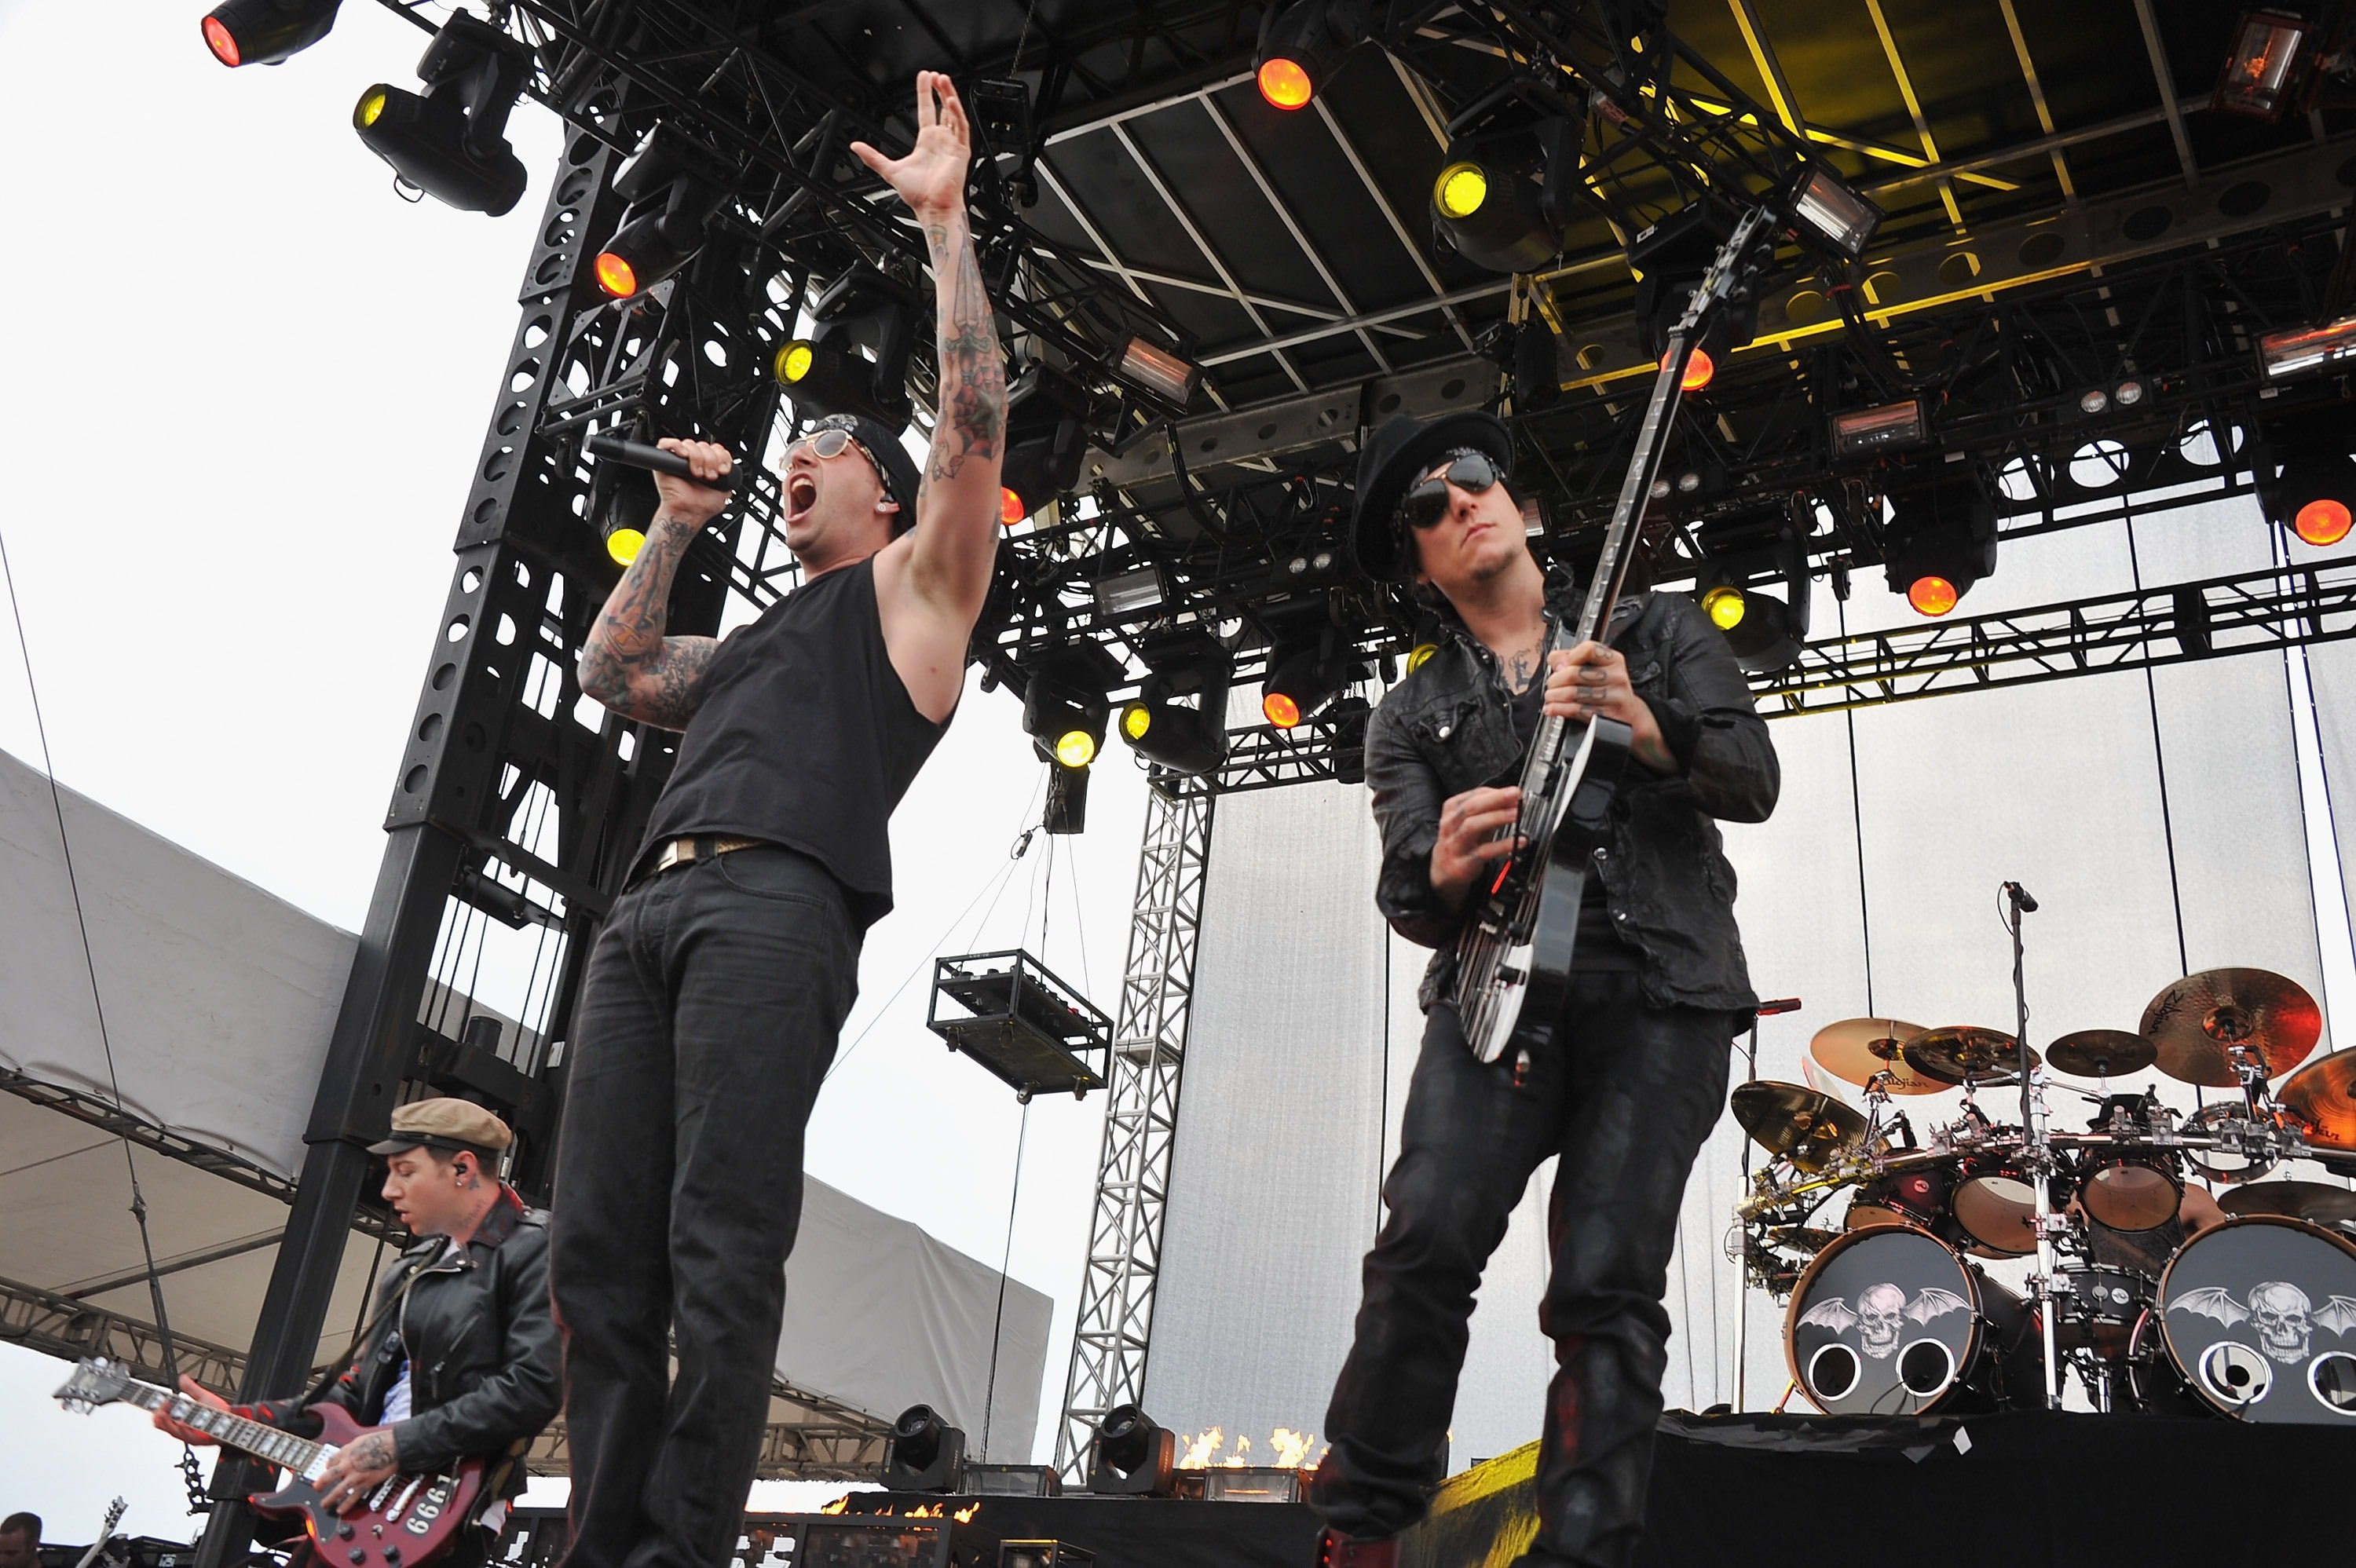 ATLANTIC CITY, NJ - JUNE 24: M. Shadows and Synyster Gates of Avenged Sevenfold perform during the 2012 Orion Music + More Festival at Bader Field on June 24, 2012 in Atlantic City, New Jersey.